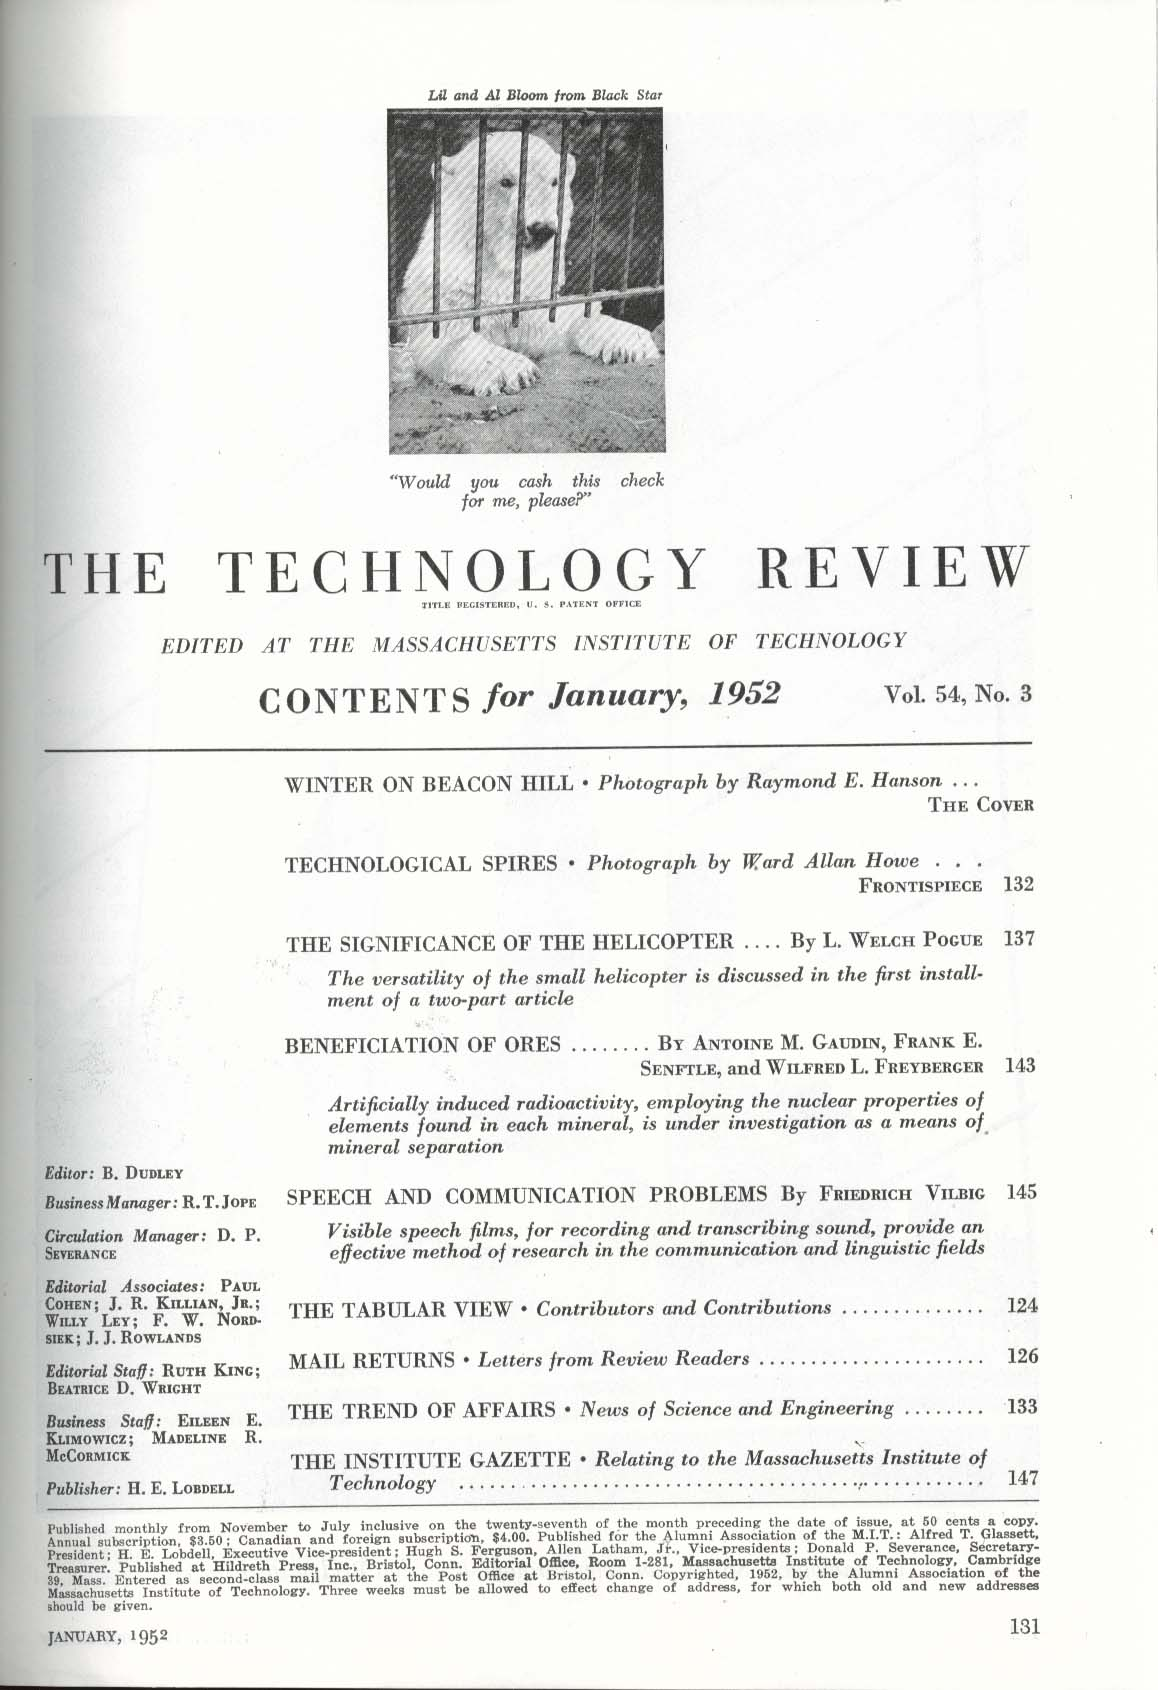 TECHNOLOGY REVIEW Helicopter Development Artificial Induced Radioactivity 1 1952